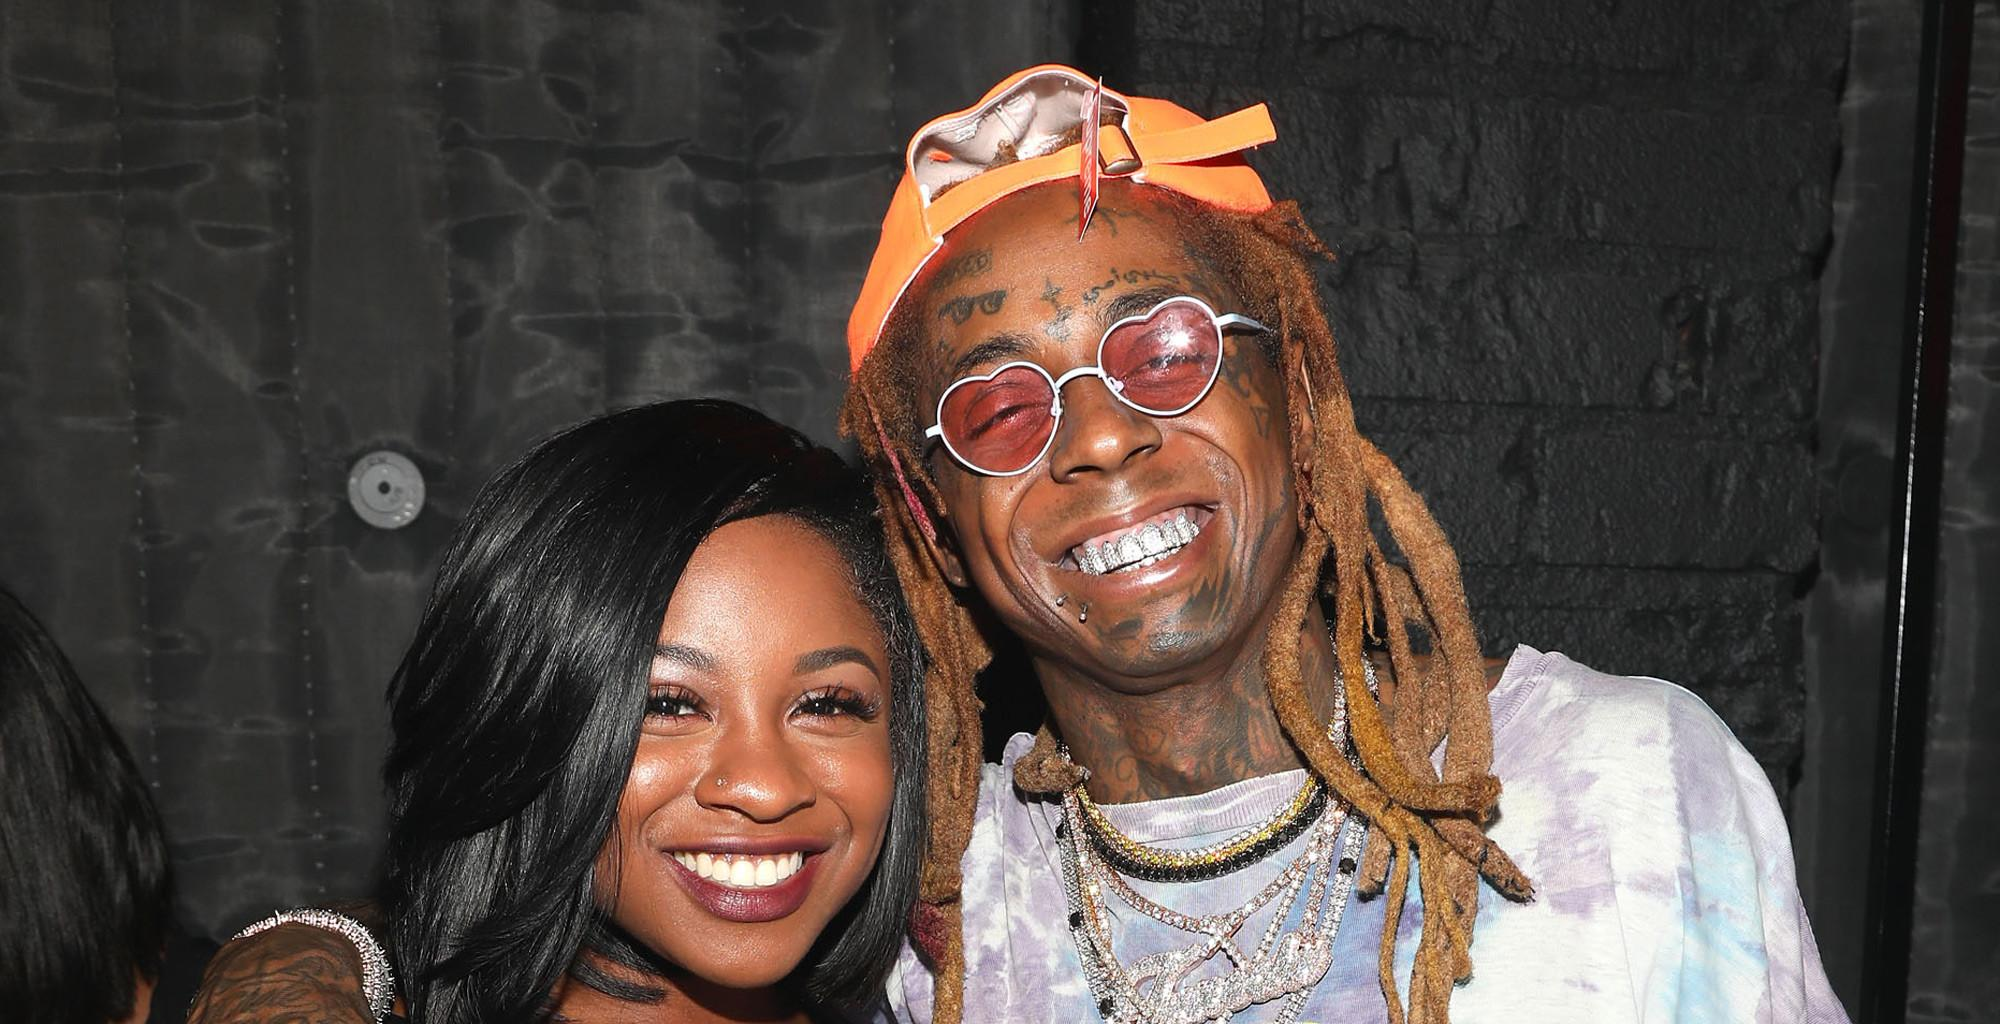 Reginae Carter's Video Featuring Her Dad, Lil Wayne Has Fans Saying She's A Lucky Girl